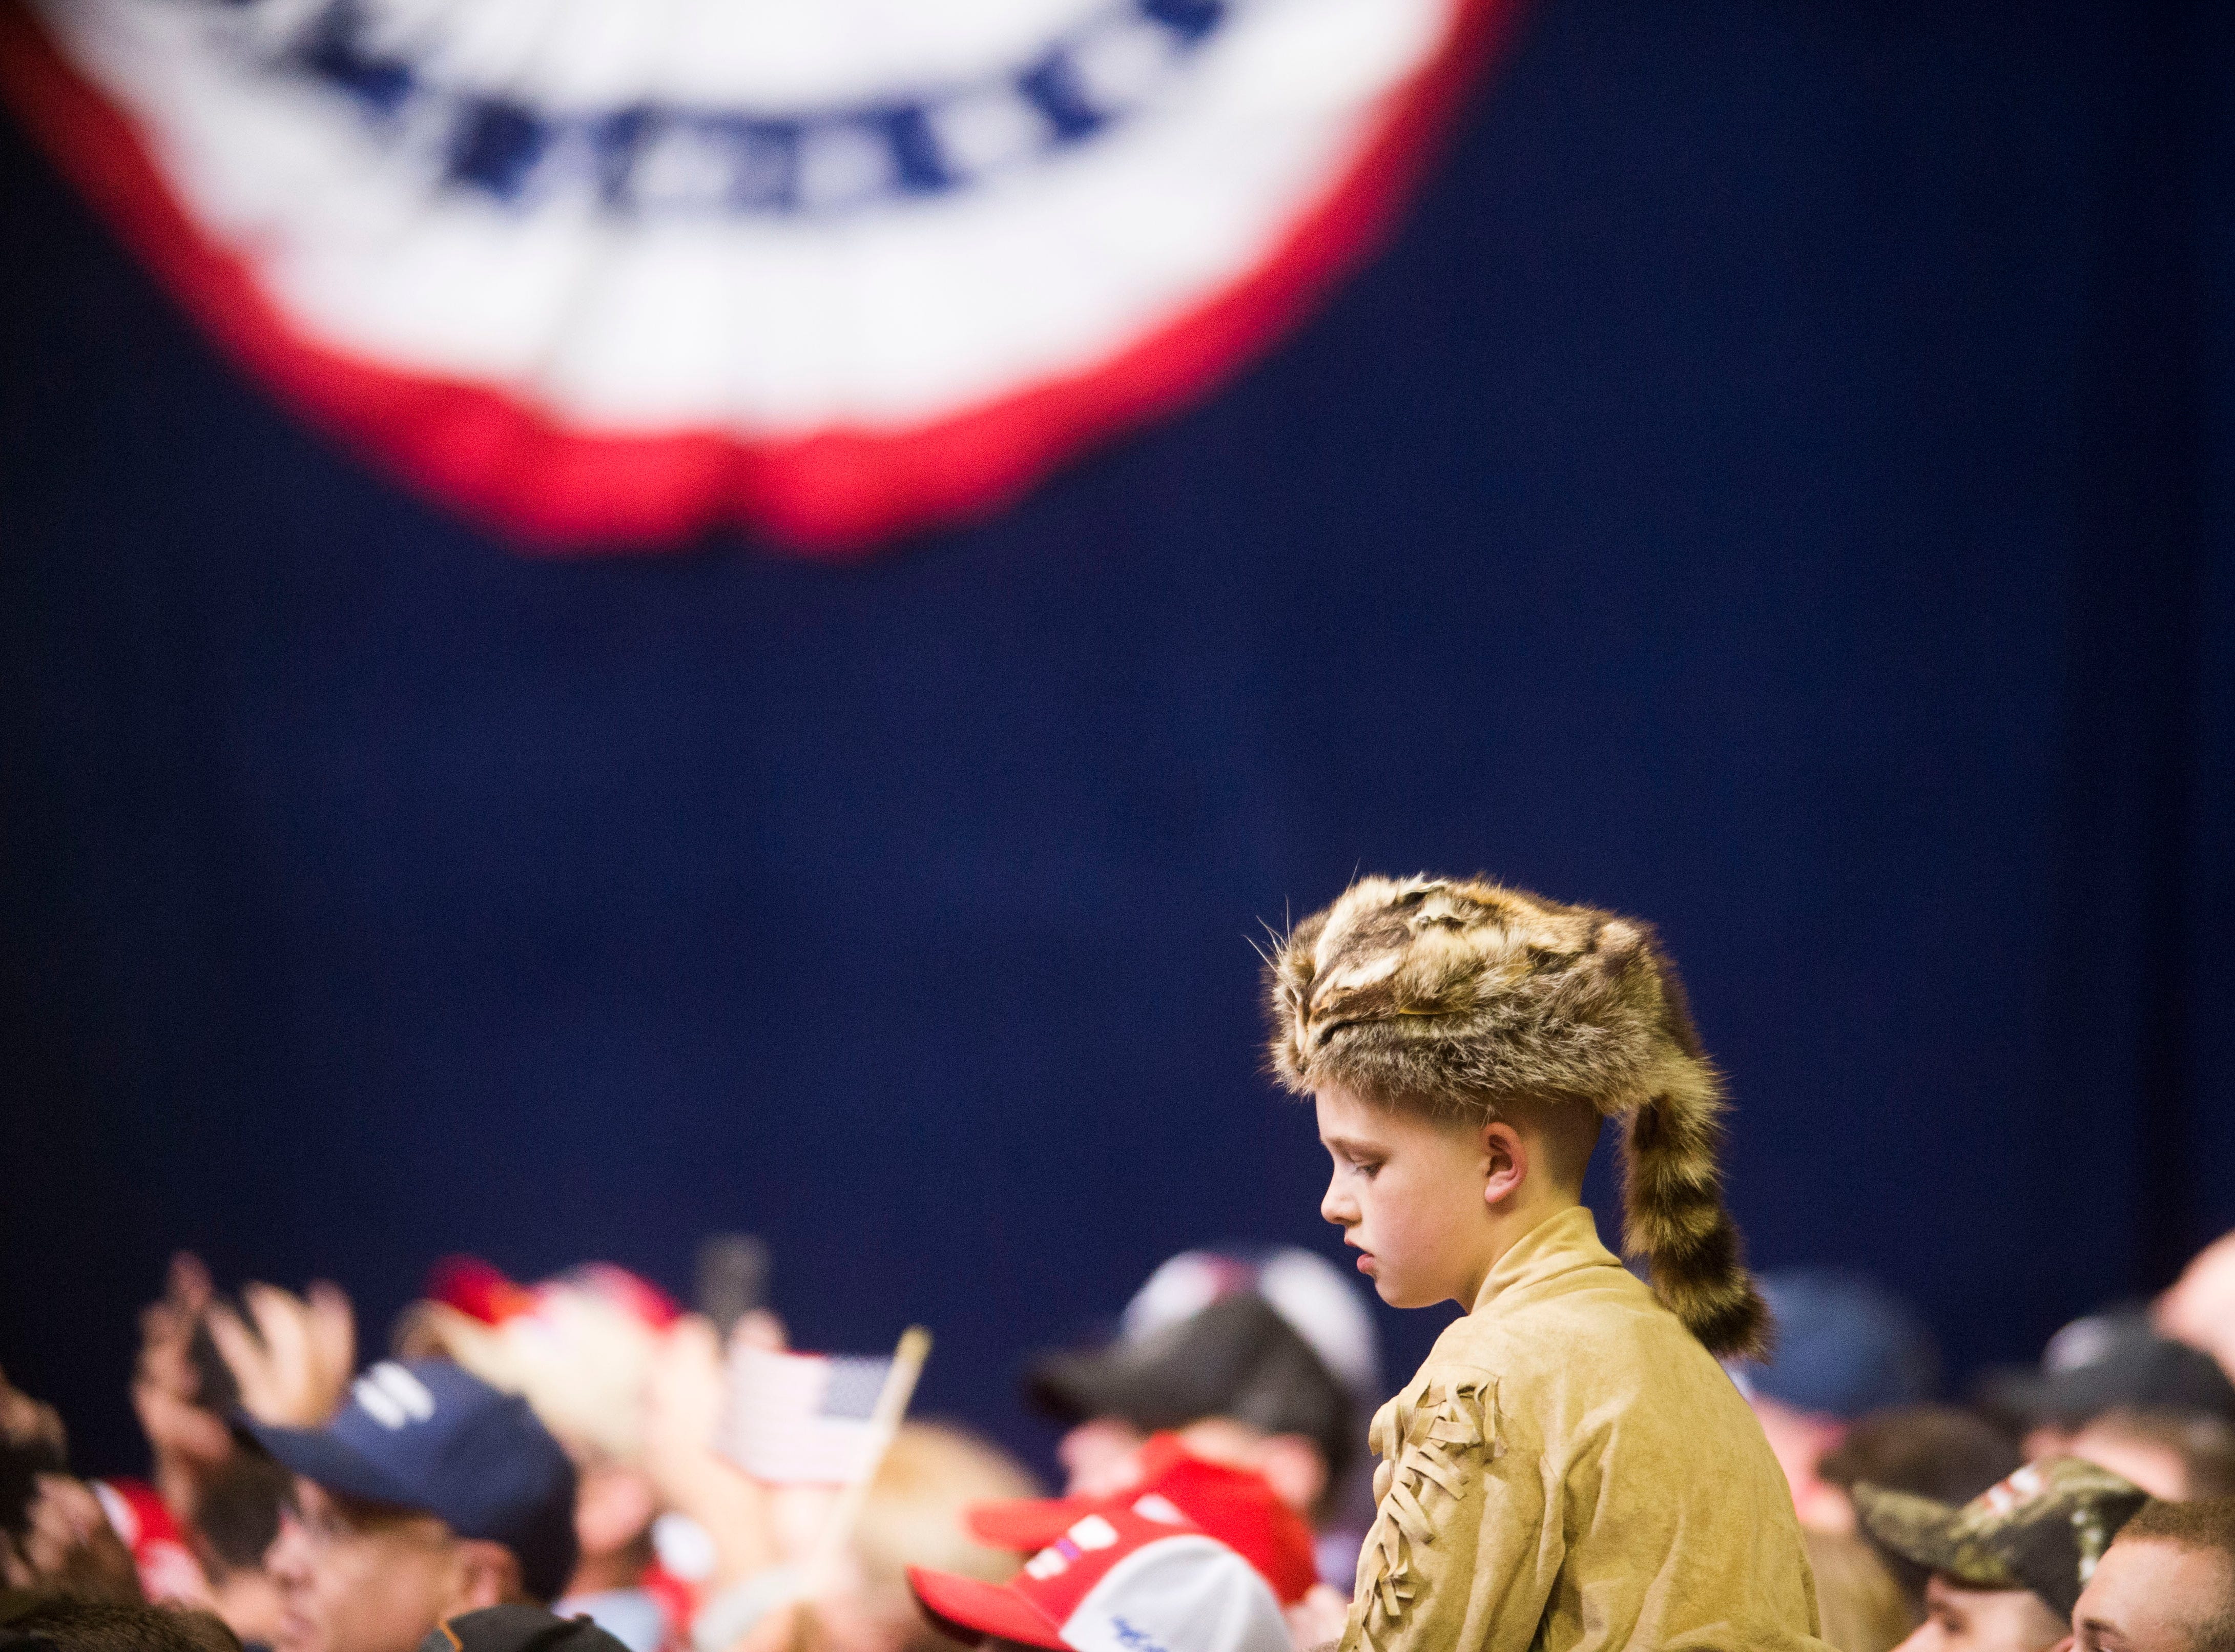 A young Donald Trump supporter listens during a Donald Trump rally in support of U.S. Rep. Marsha Blackburn for the U.S. Senate at McKenzie Arena in Chattanooga, Sunday, Nov. 4, 2018.